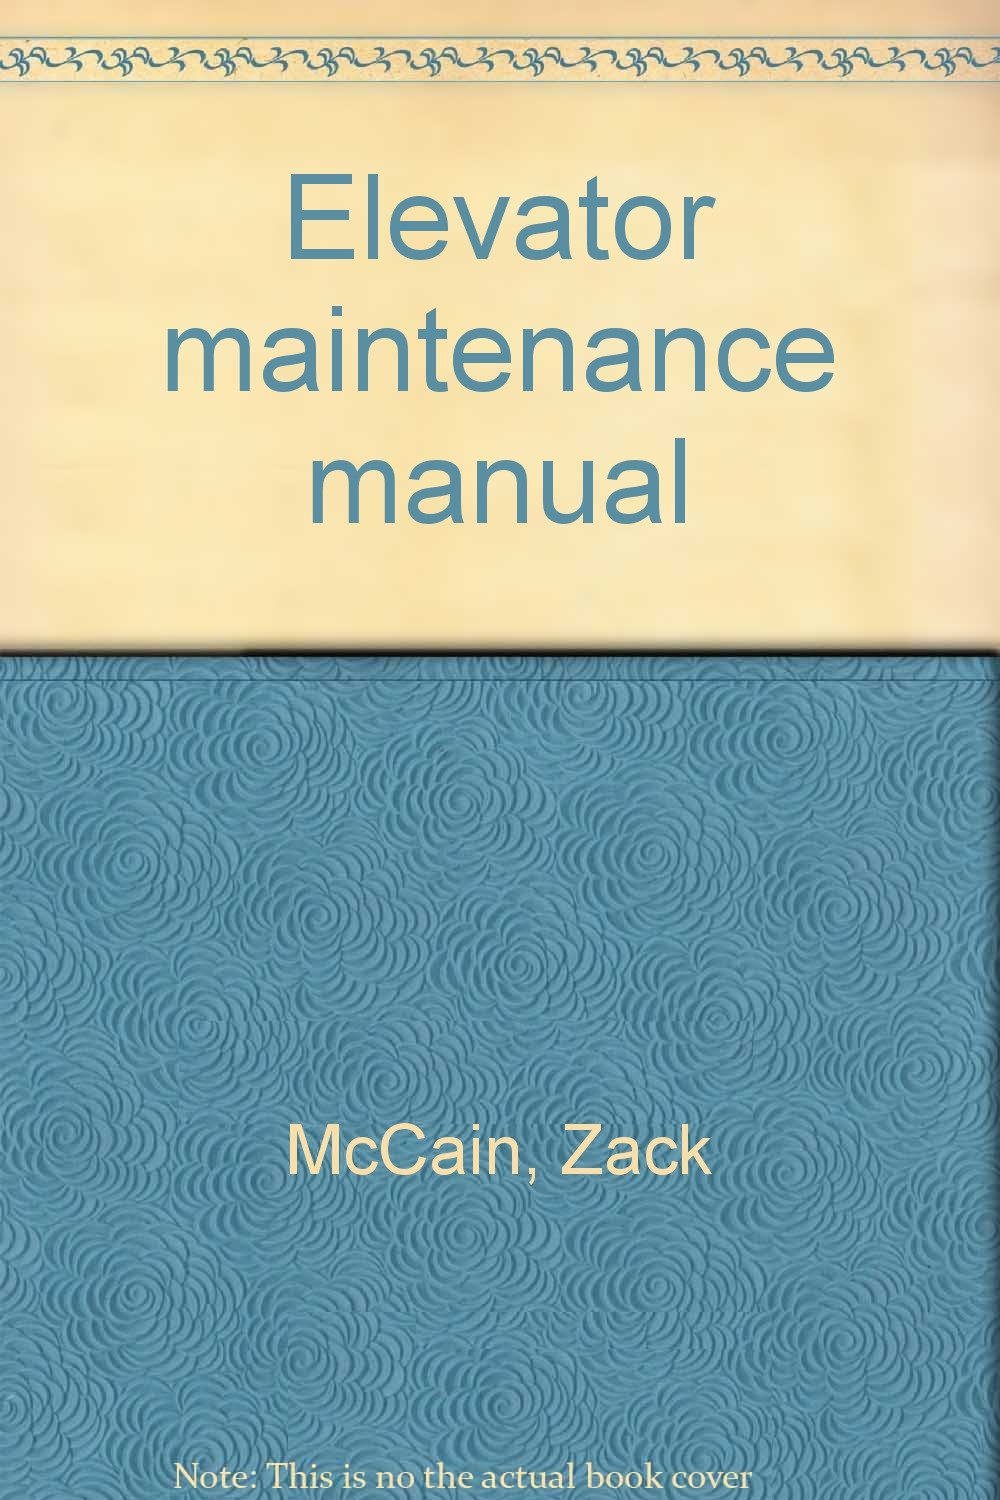 Elevator maintenance manual: Zack McCain: 9781886536272: Amazon.com: Books